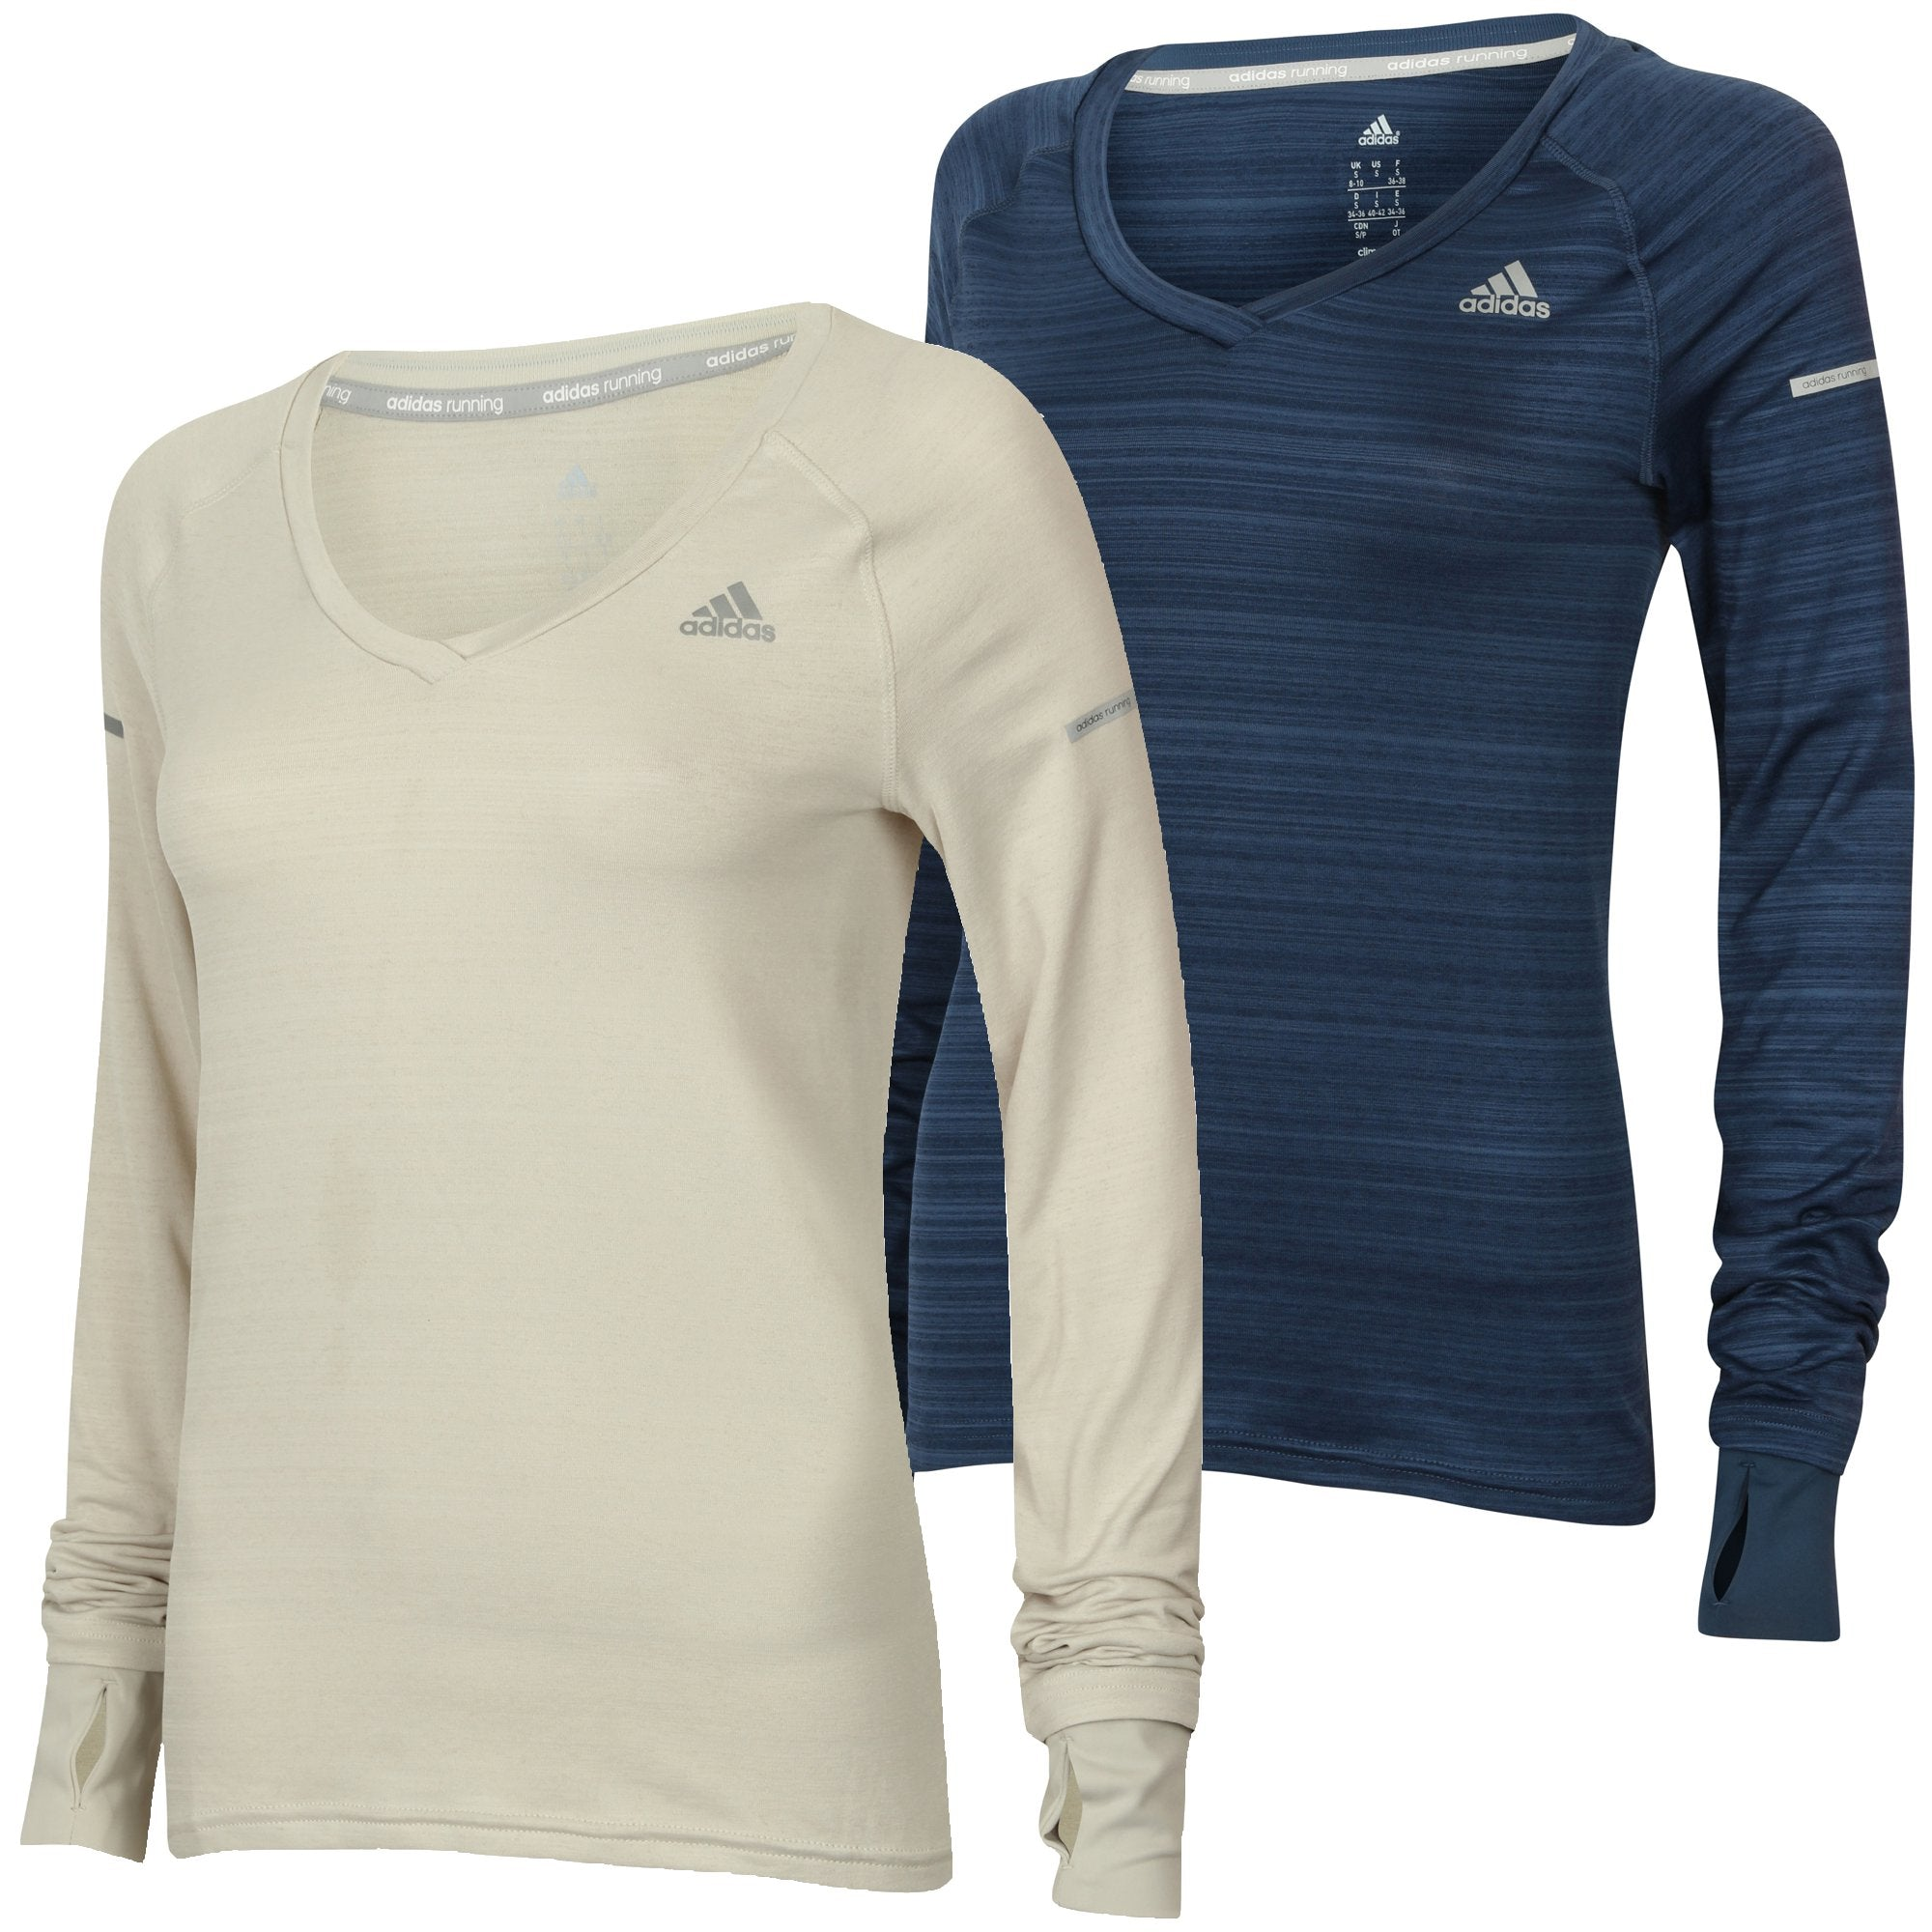 f73c780ad3 adidas Women's Go-To Gear Slim Fit V-Neck Long Sleeve Running T ...